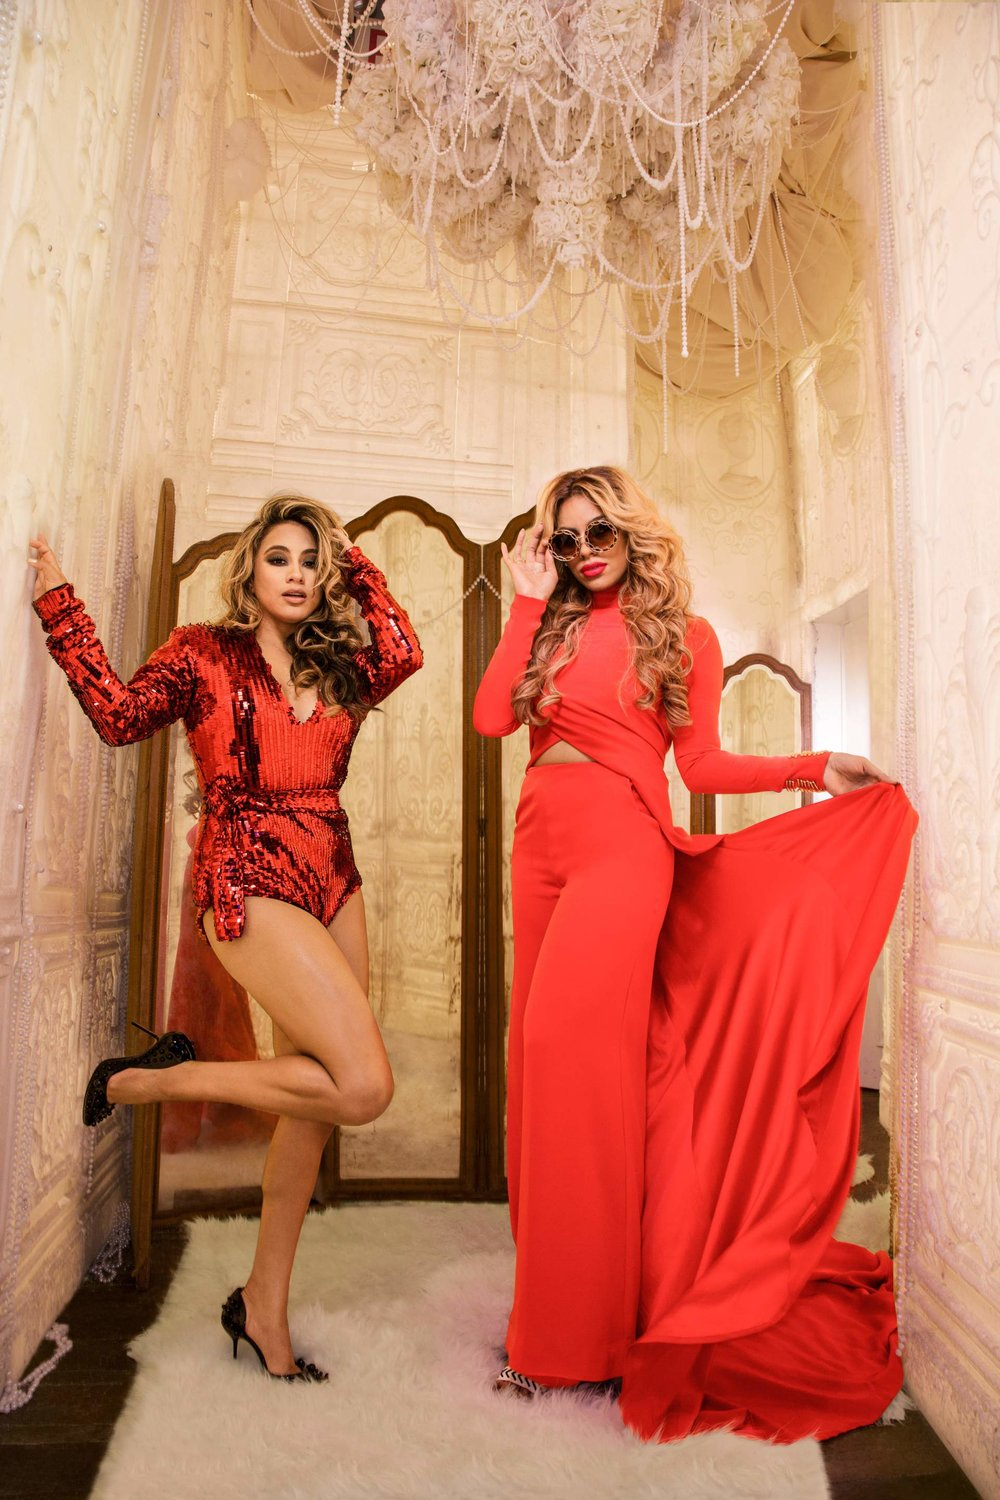 Cosmo for Latinas  Magazine - Ally Brooke & Dinah Jane. Photo: Kareem Black.